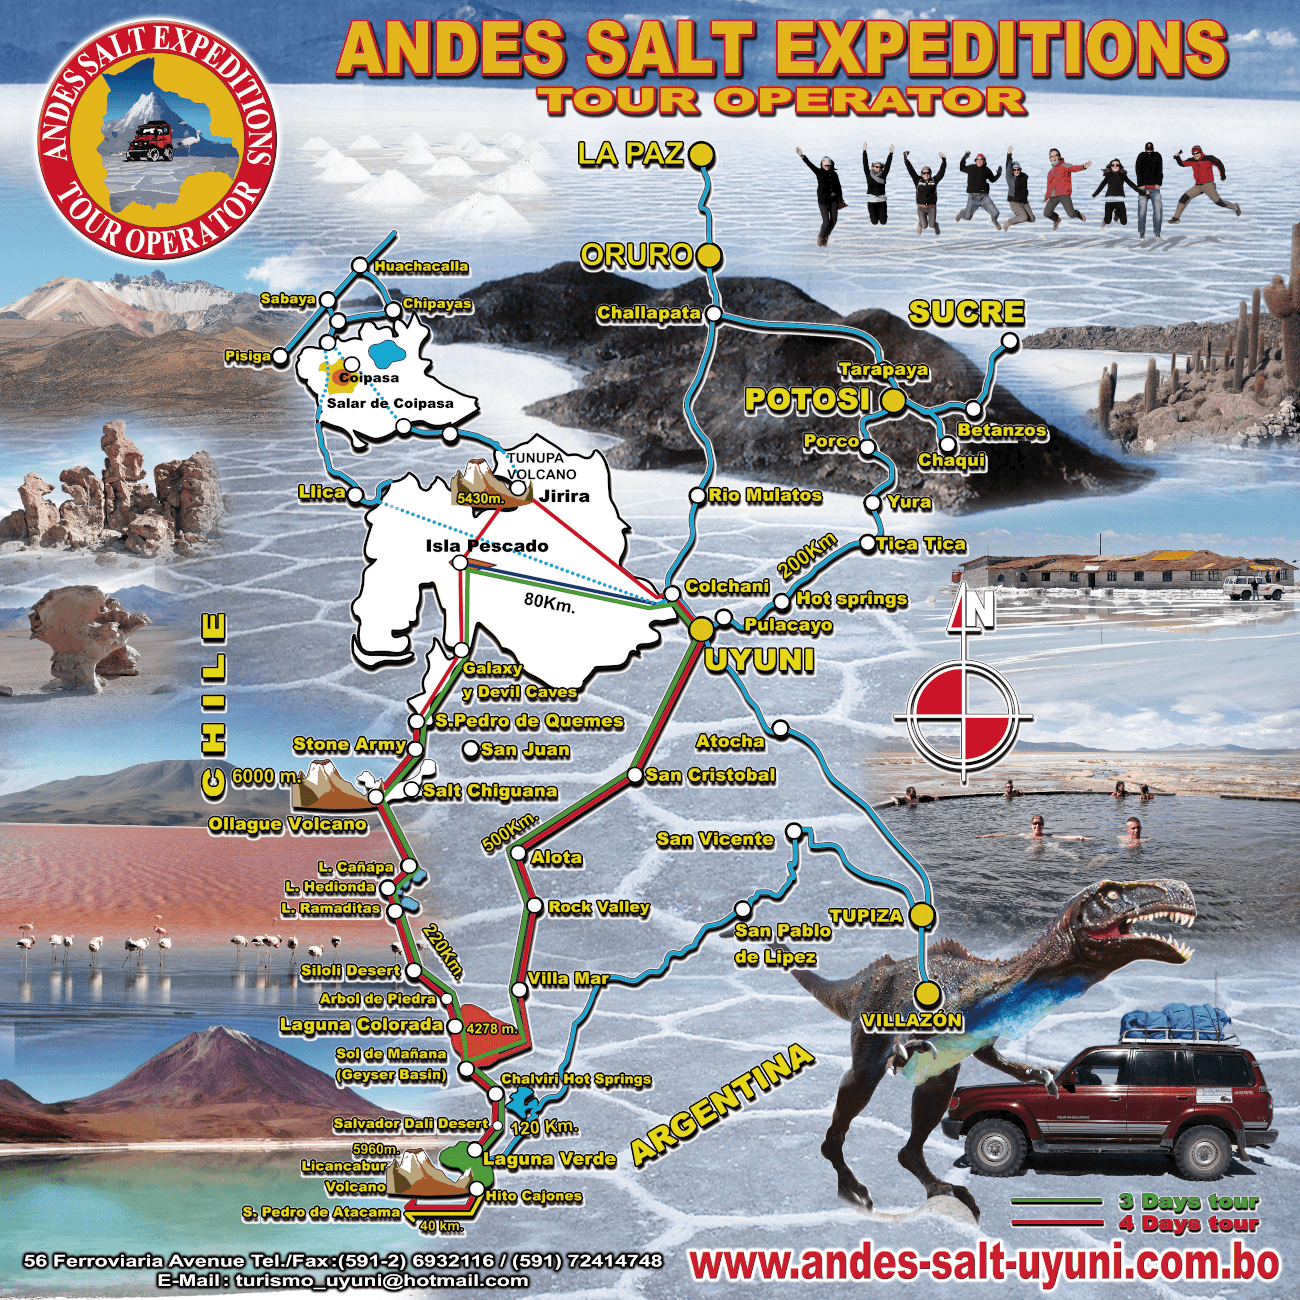 Andes Salt Expeditions